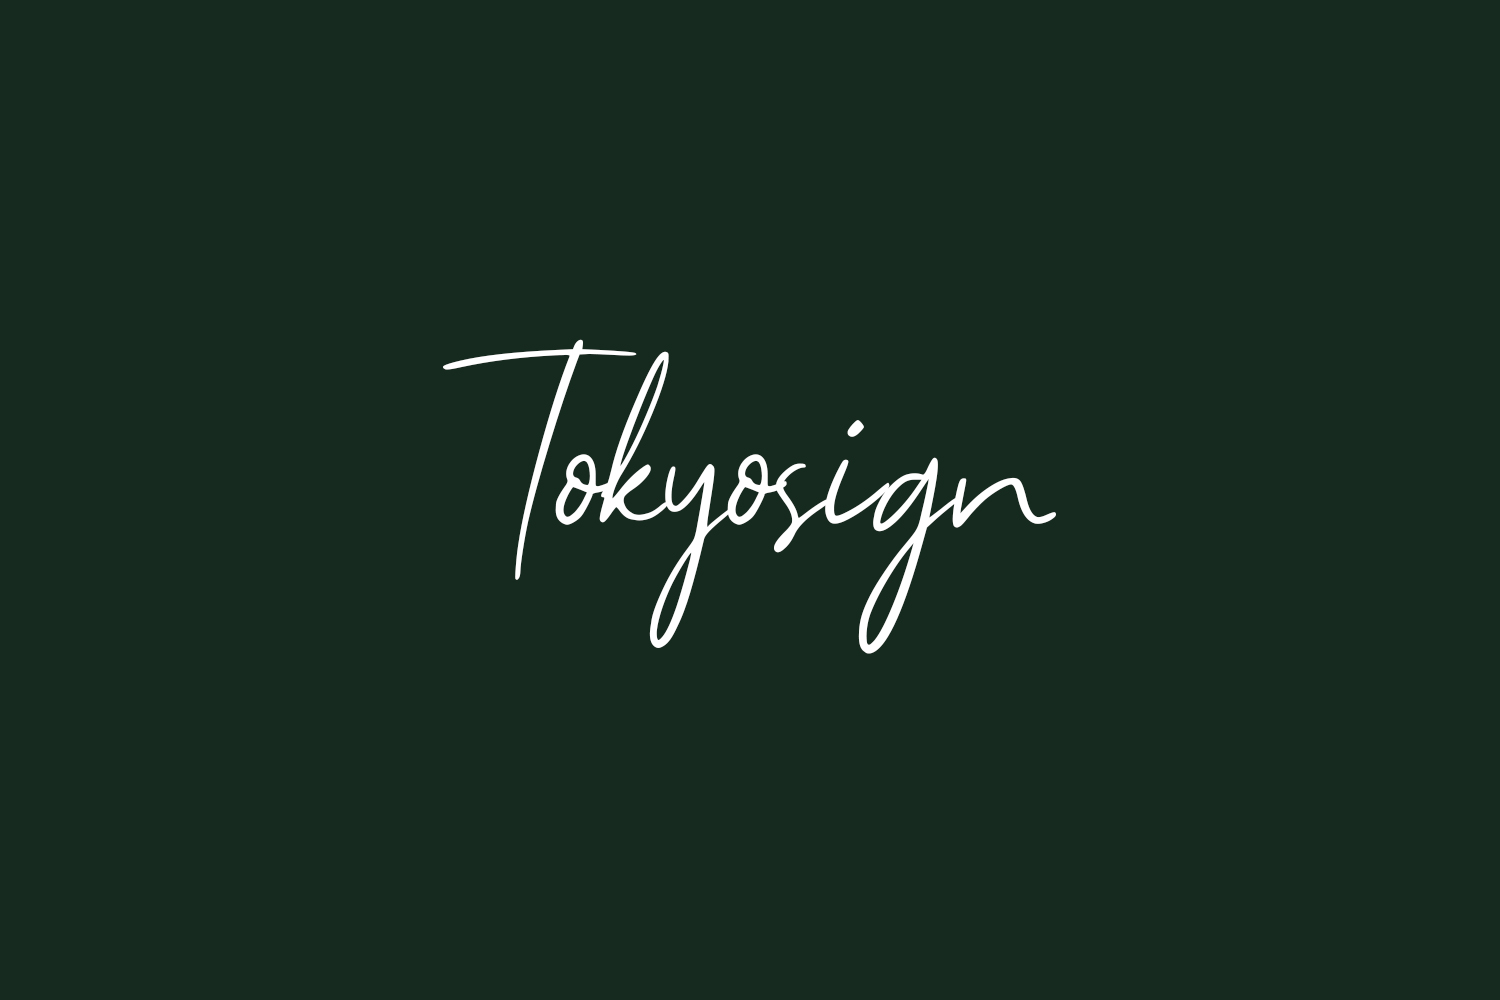 Tokyosign Free Font